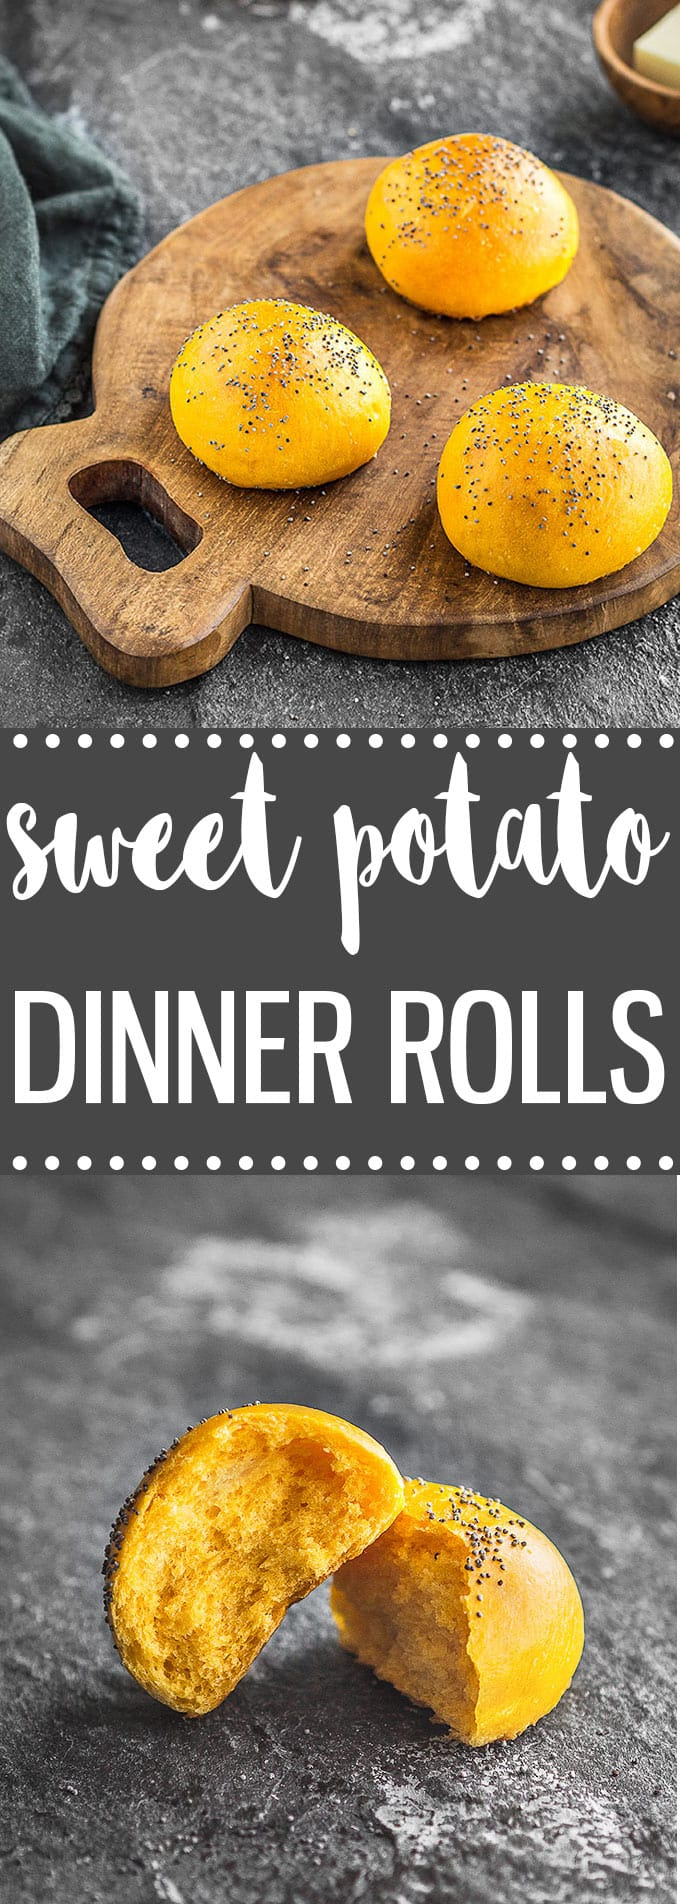 Soft and fluffy homemade sweet potato dinner rolls. This is the perfect easy recipe for your Thanksgiving dinner table and holiday gatherings! #homemade #bread #rolls #sweetpotatoes #thanksgiving #holidays #fall #fromscratch #baking #easyrecipe